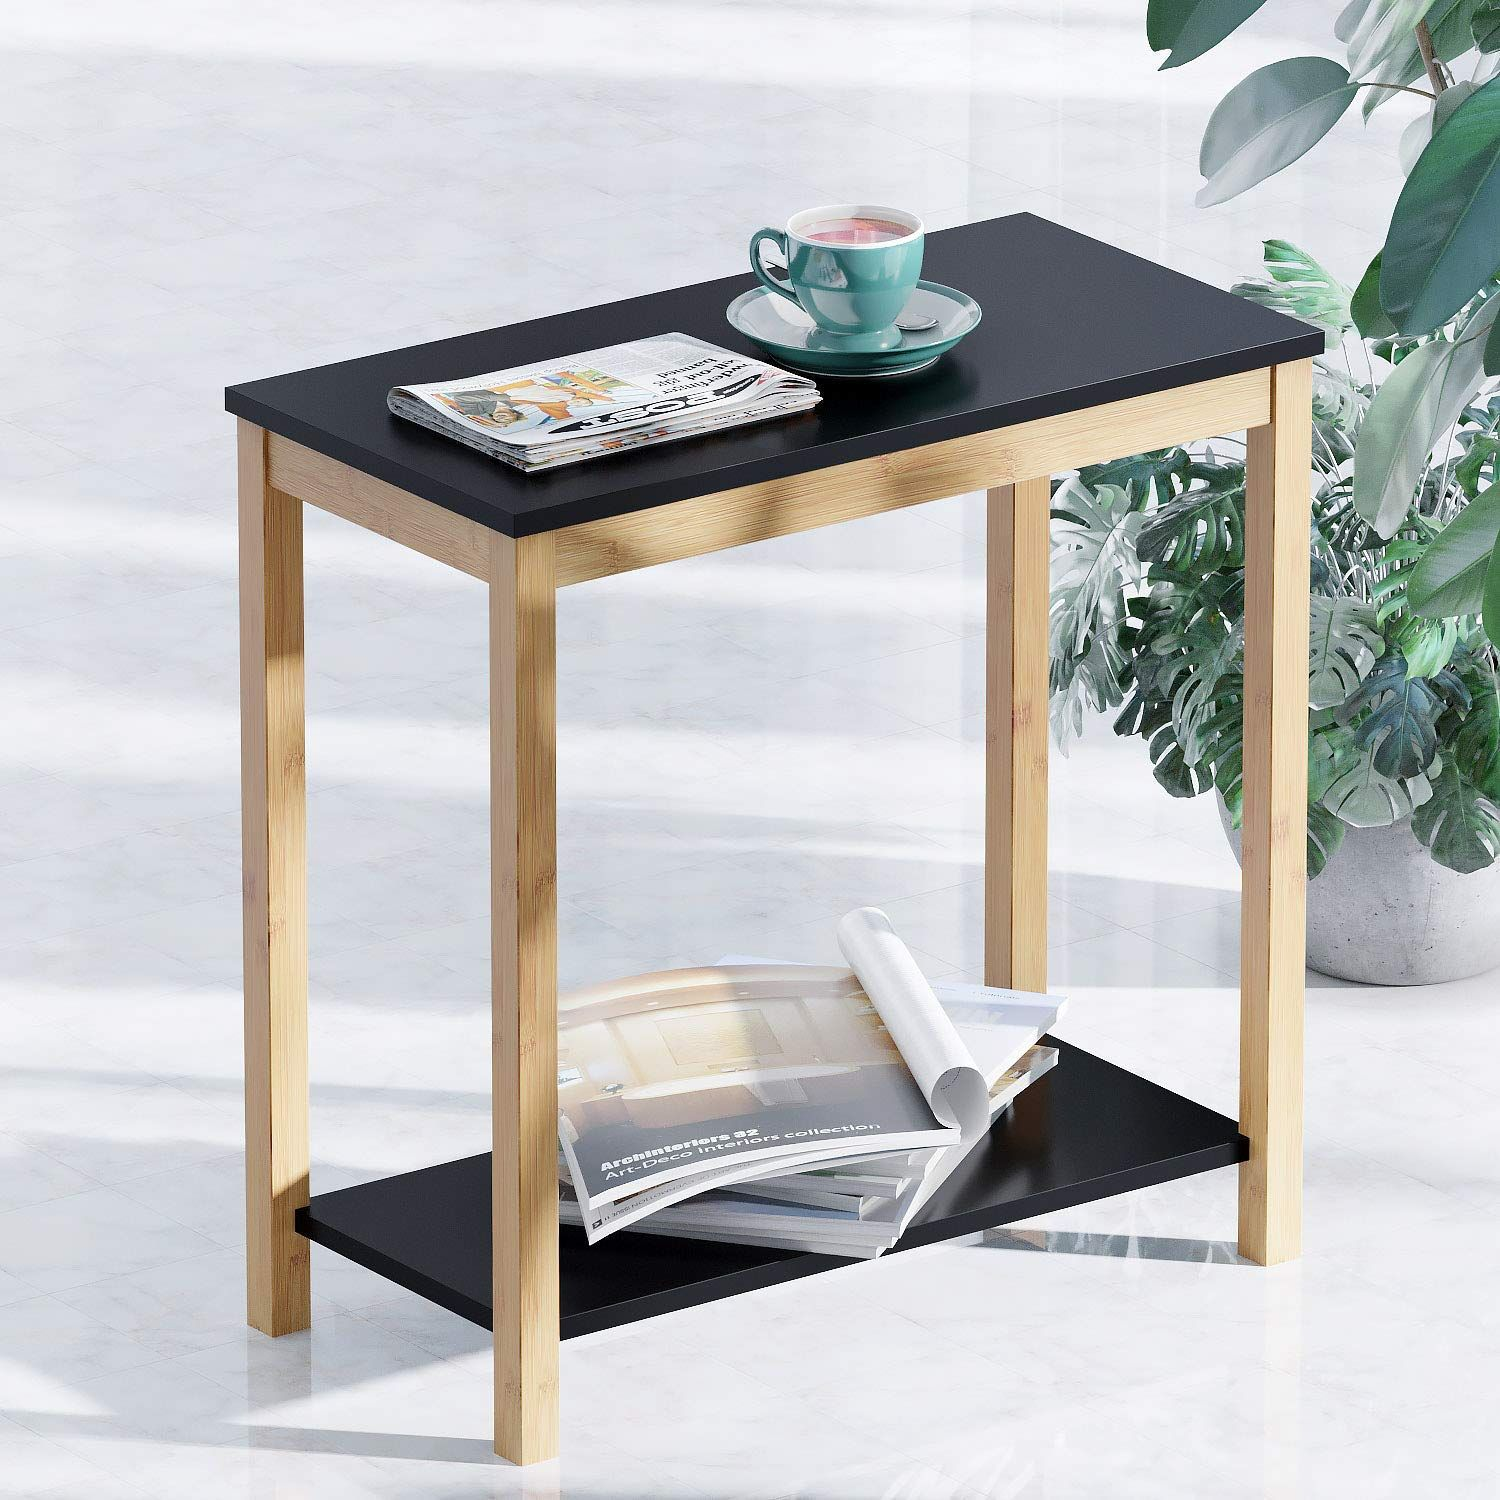 2 Tier Side Table With Storage Shelf Modern Furniture For Living Room Bedroom Balcony Family Living Room Shelves Storage Furniture Bedroom Side Table End table vs side table